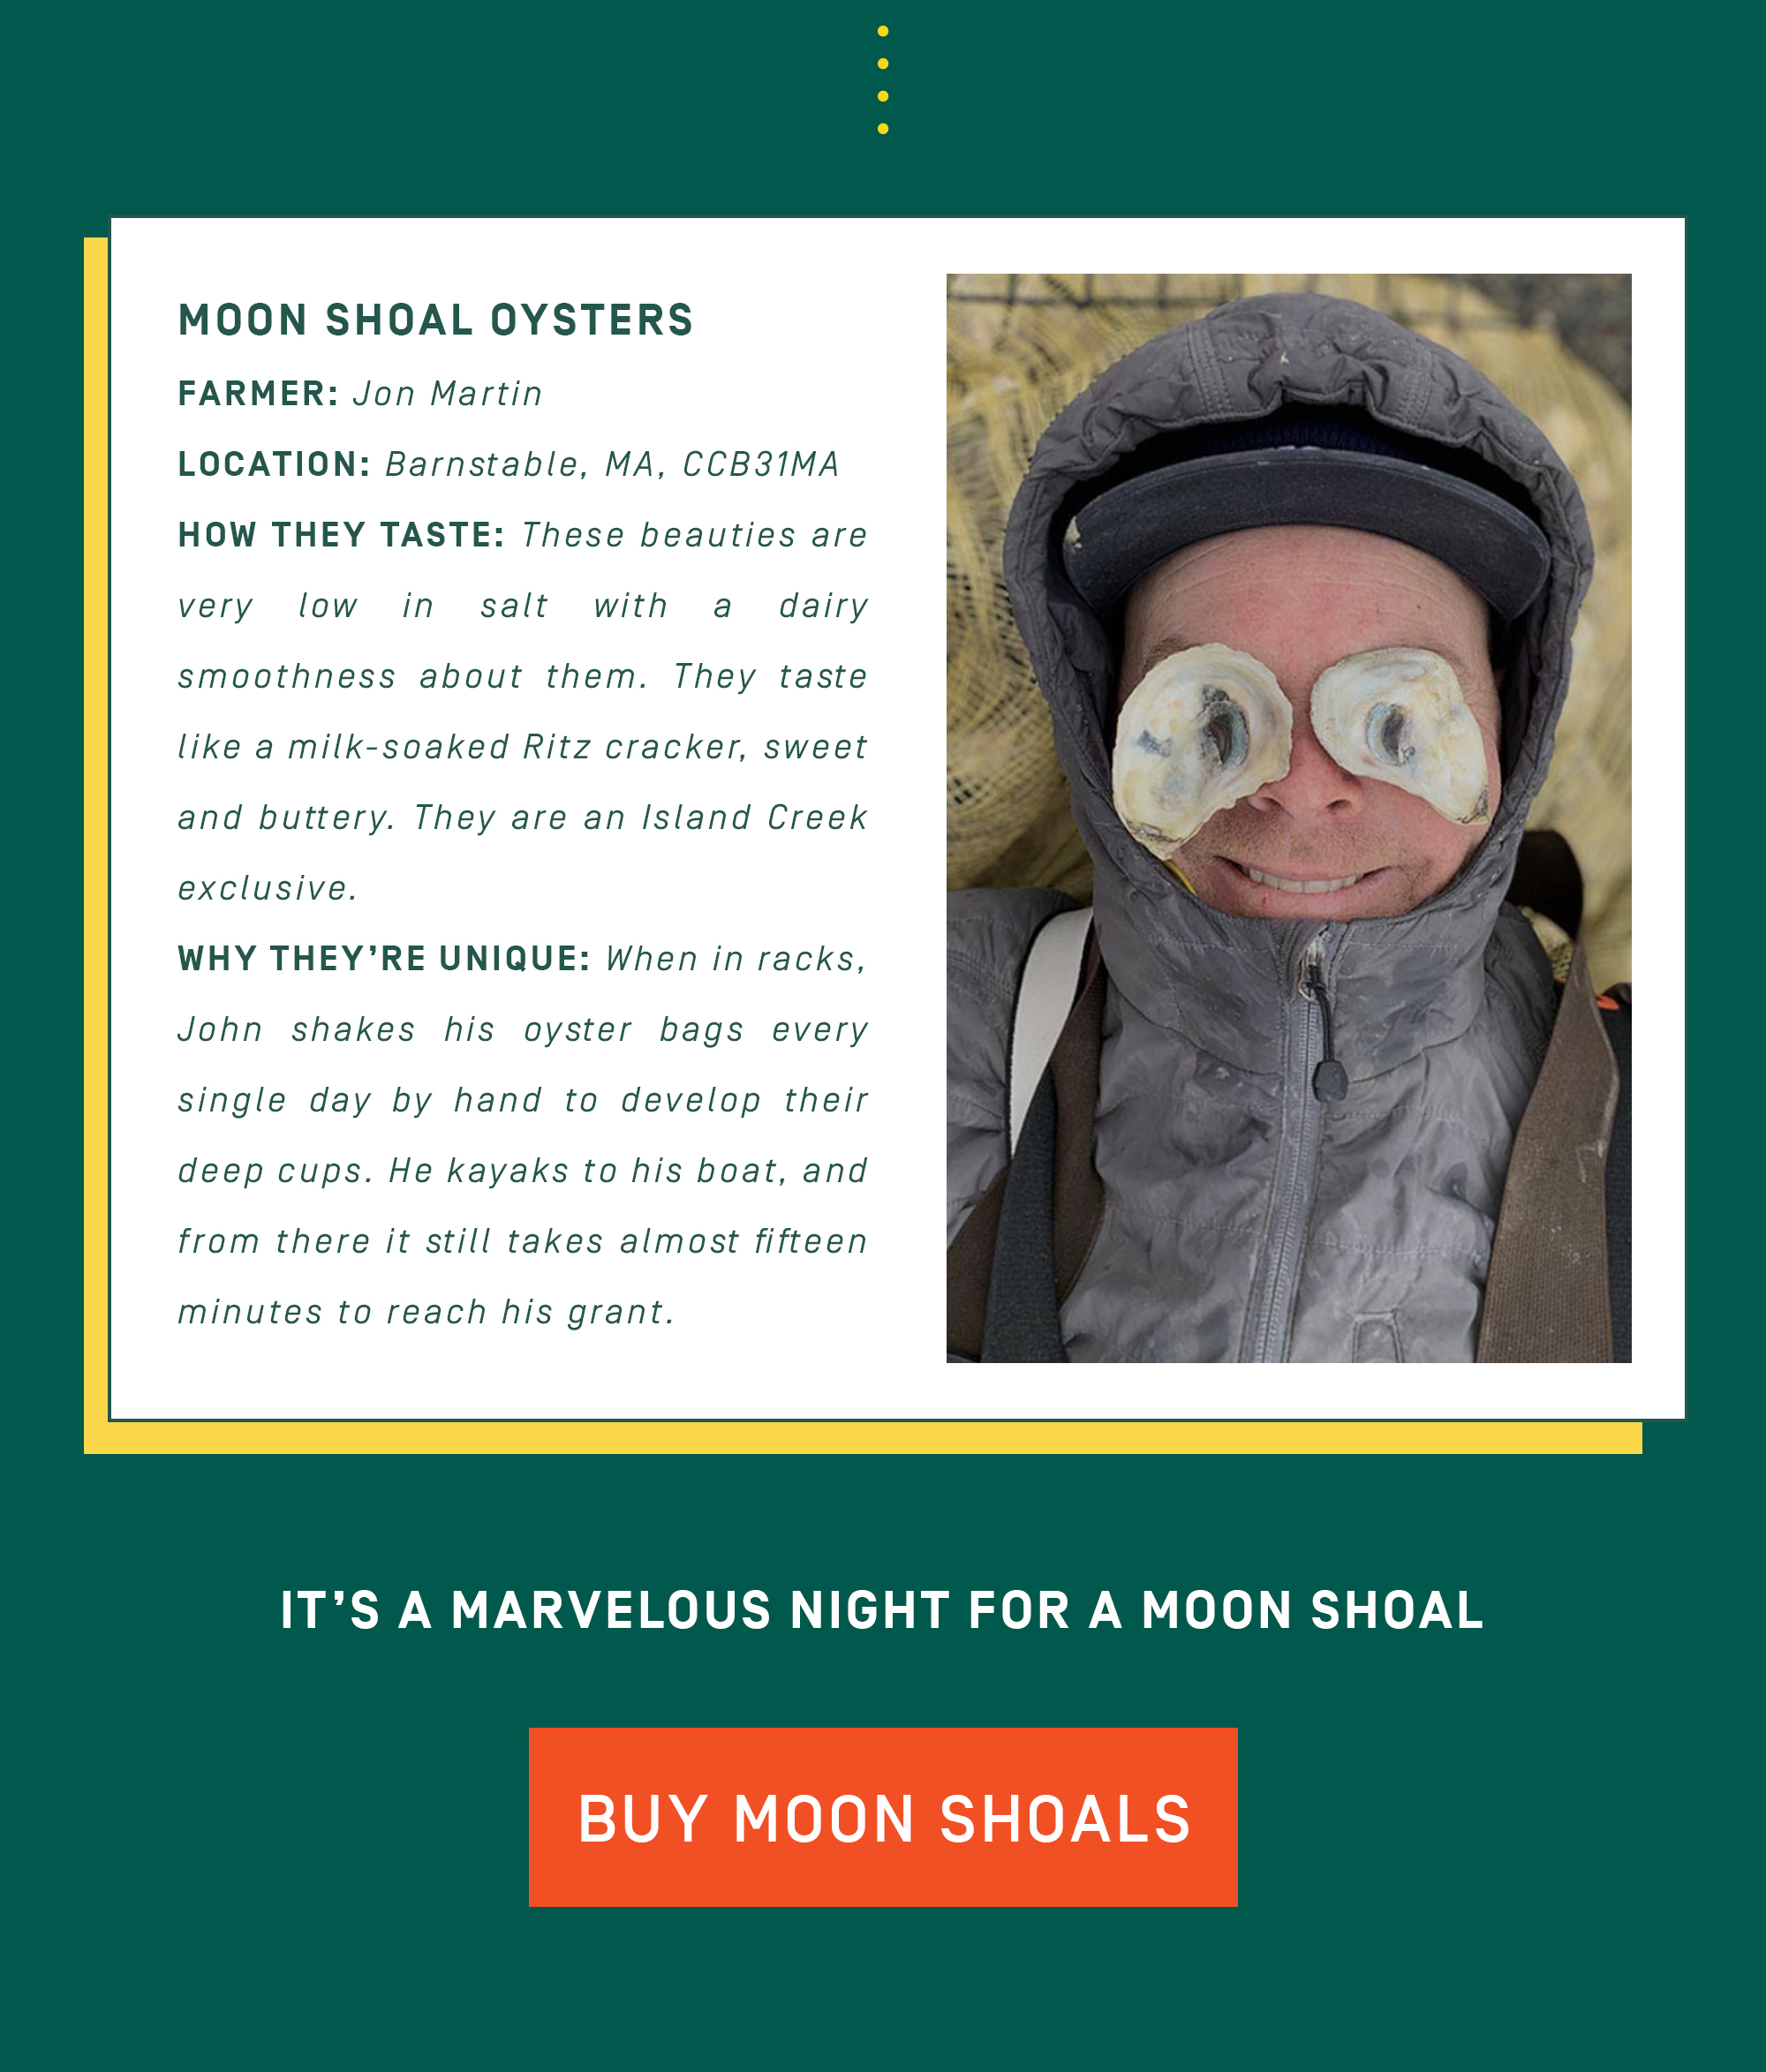 Buy Moon Shoals